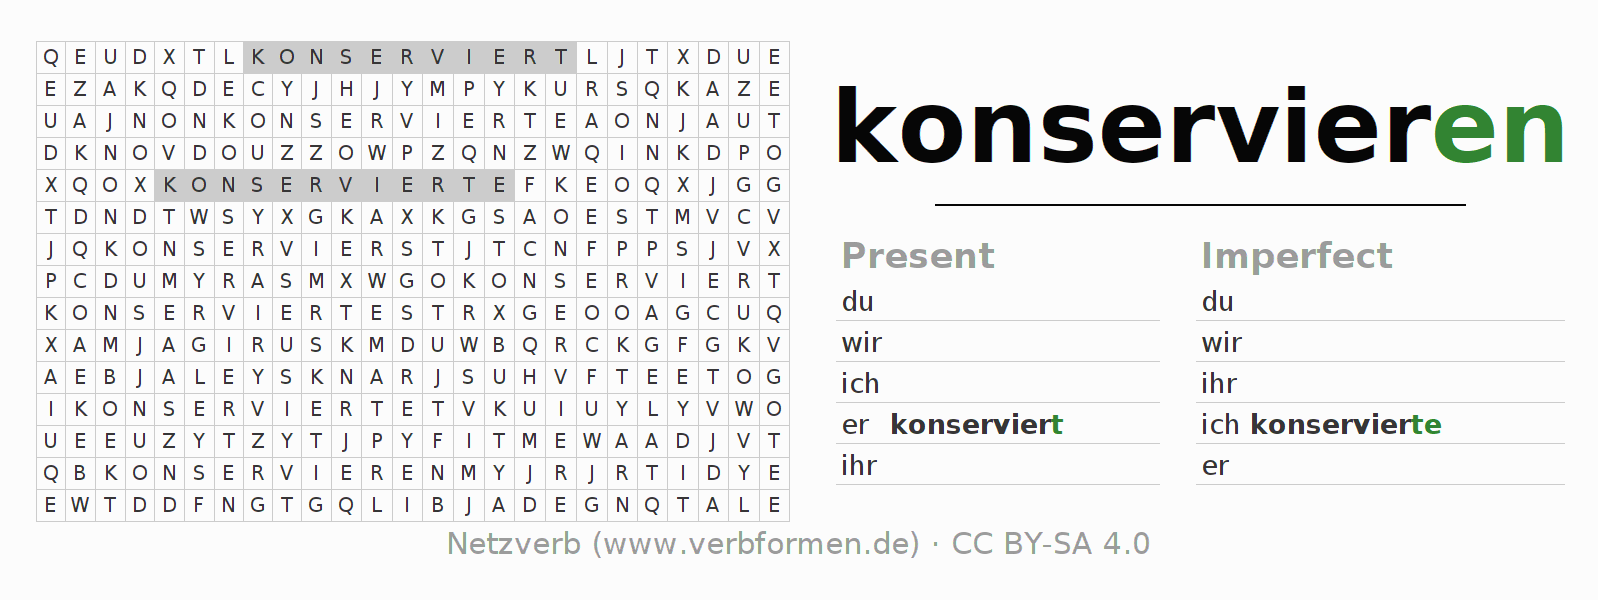 Word search puzzle for the conjugation of the verb konservieren